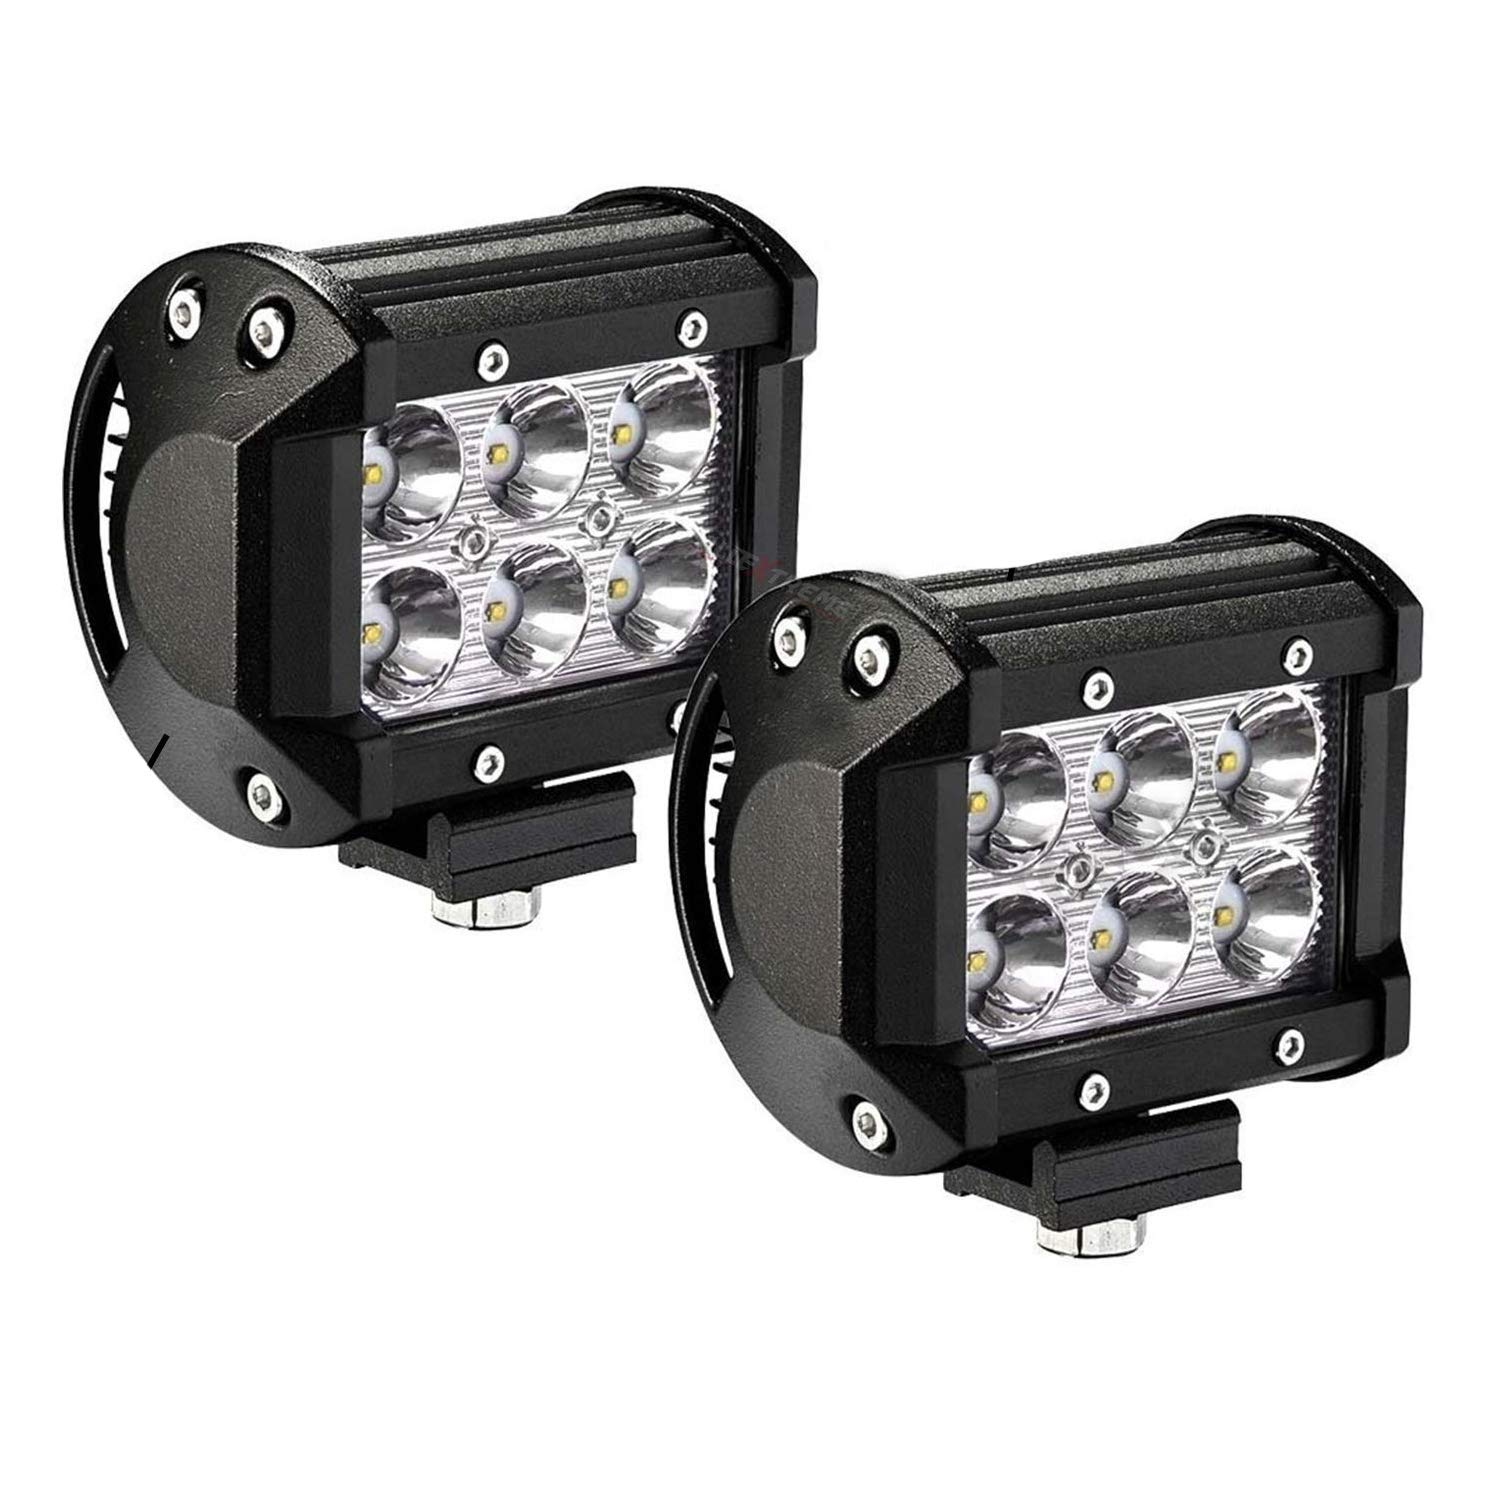 The Global Automotive Fog Lights Market place is anticipated to grow by $ 43.73 mn throughout 2021-2025.